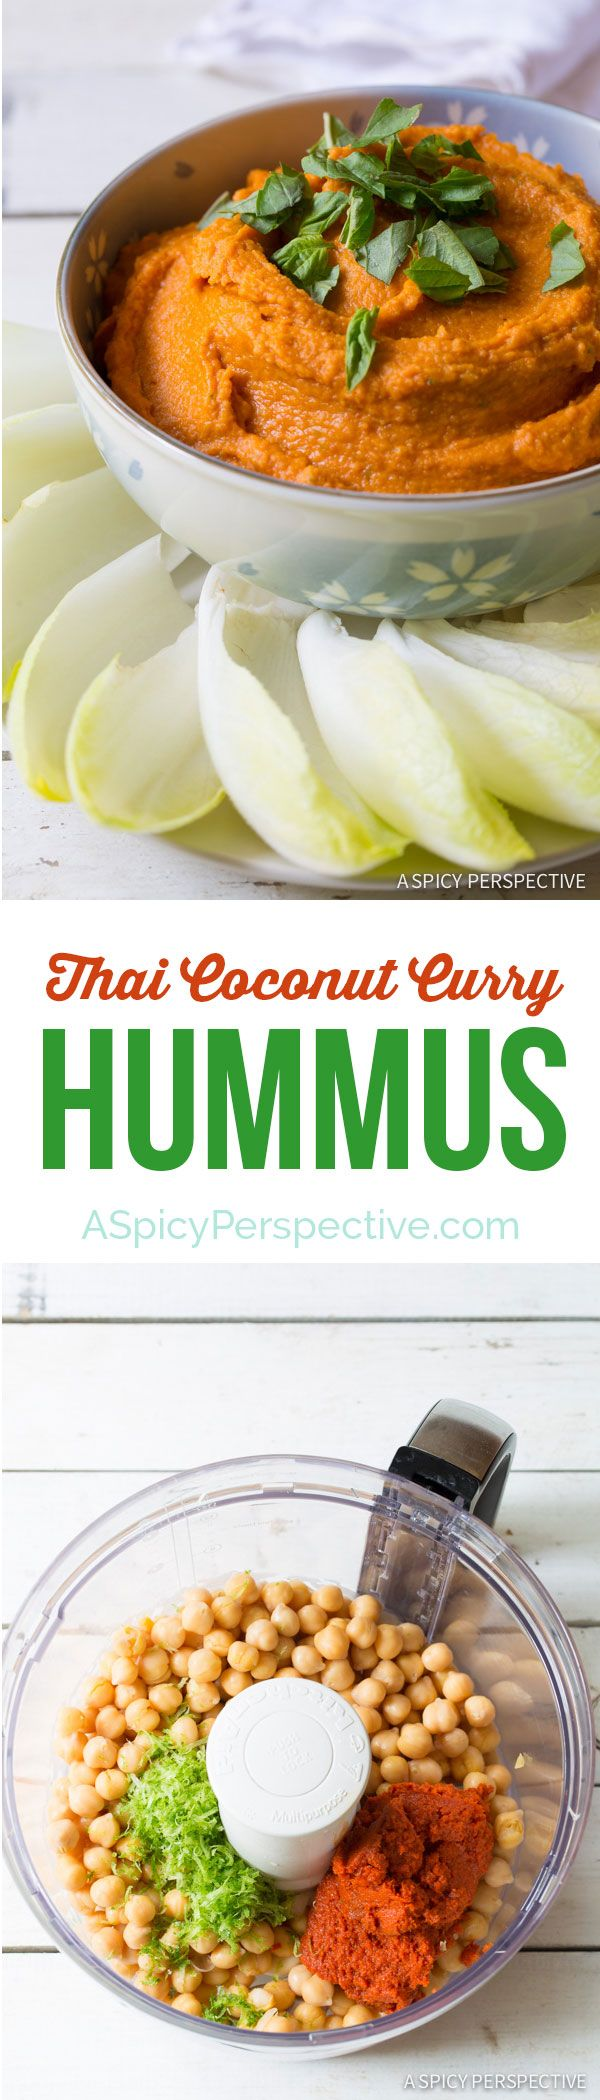 5-Ingredient Thai Coconut Curry Hummus on ASpicyPerspective.com #hummus #healthy #thai via @spicyperspectiv